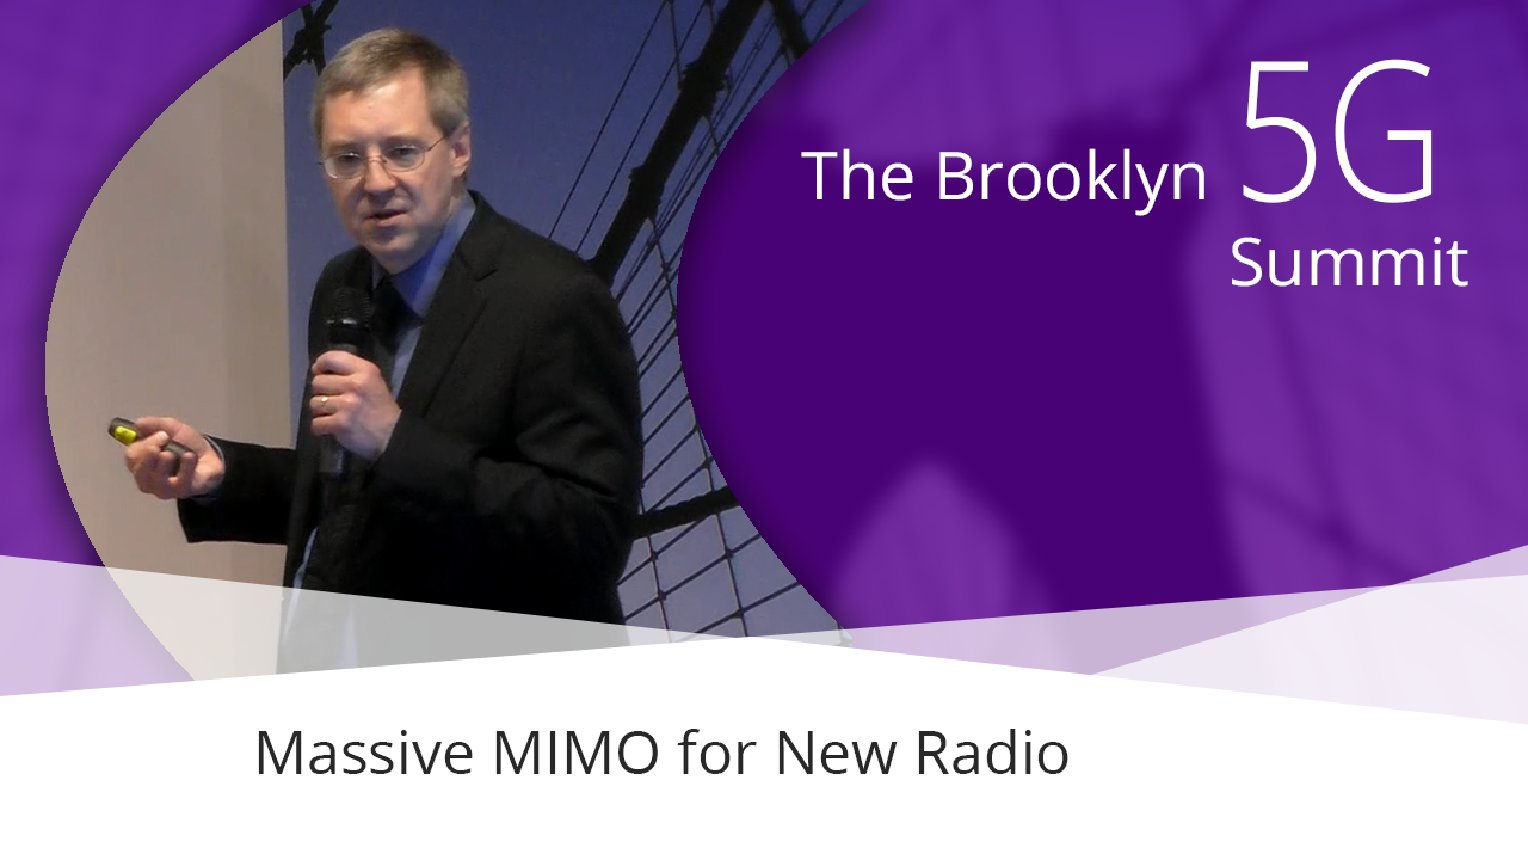 Massive MIMO for the New Radio - Fred Vook: Brooklyn 5G Summit 2017